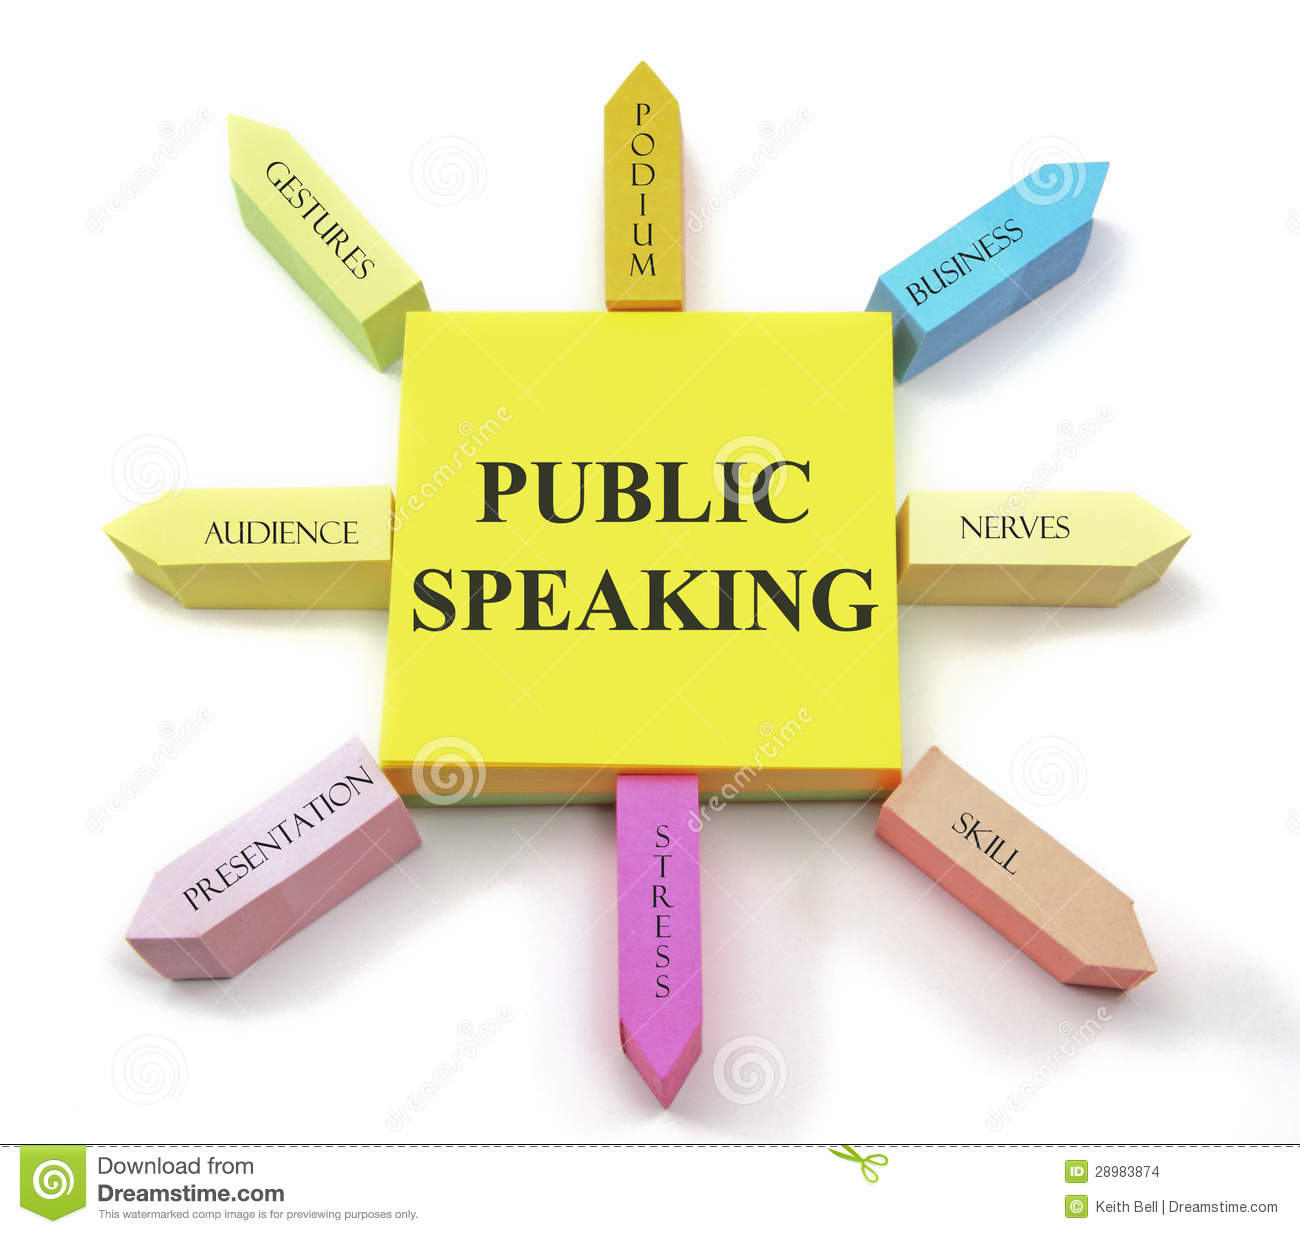 25 Public Speaking Skills Every Speaker Must Have